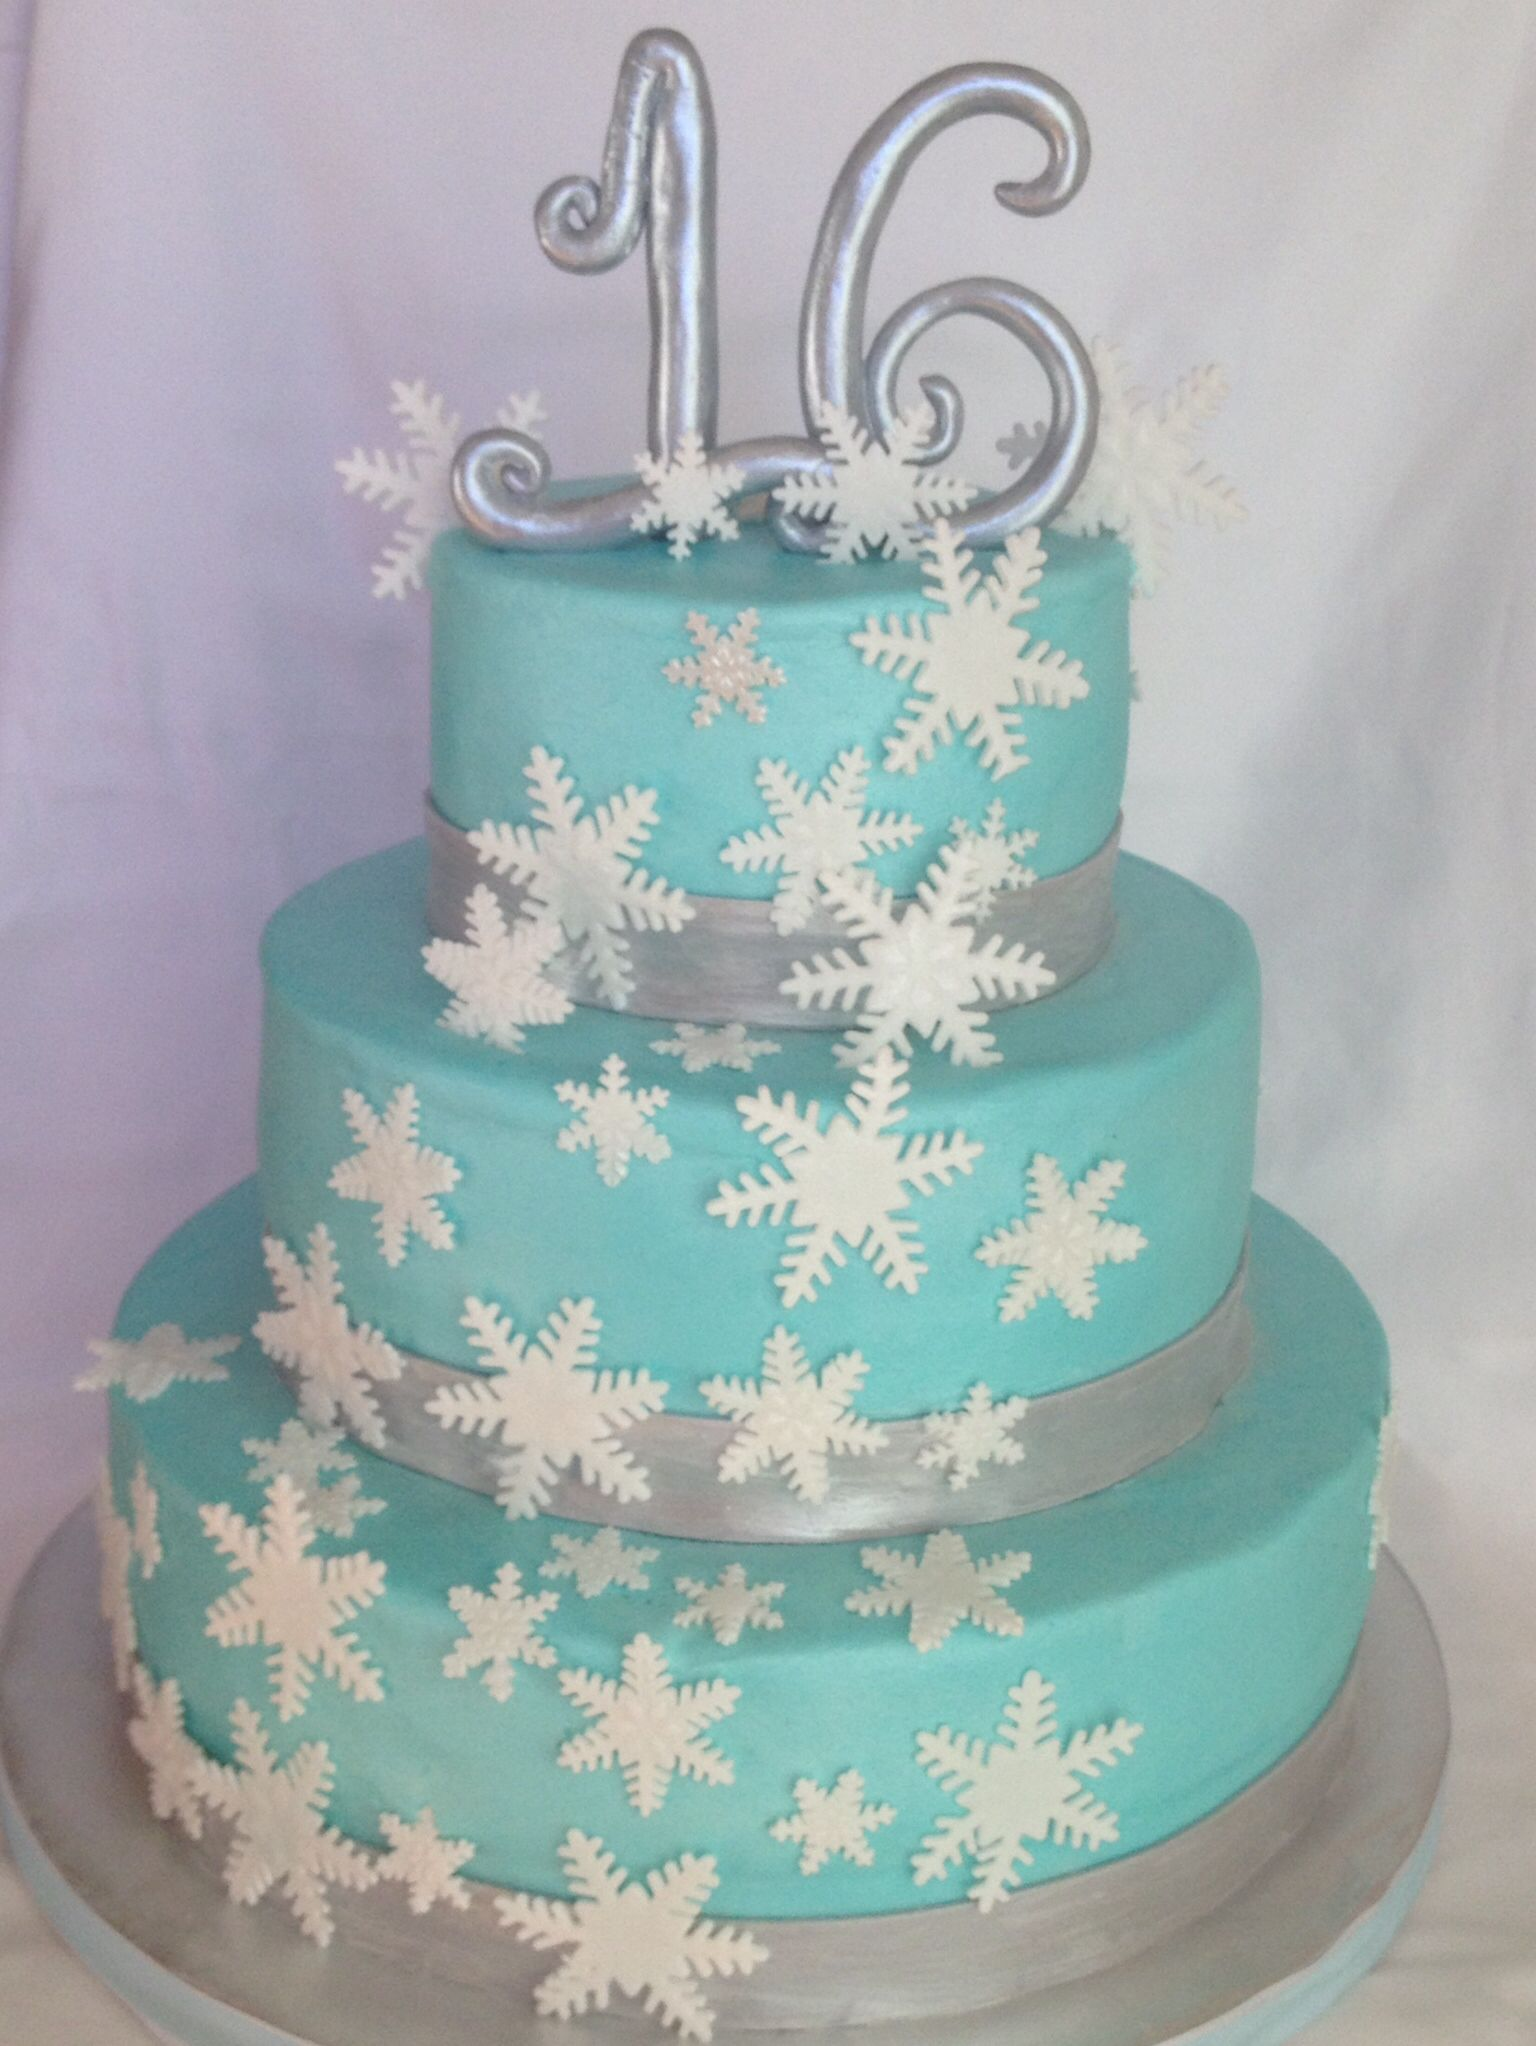 Stupendous Winter Snowflake Themed Cake For 16Th Birthday With Images Birthday Cards Printable Opercafe Filternl